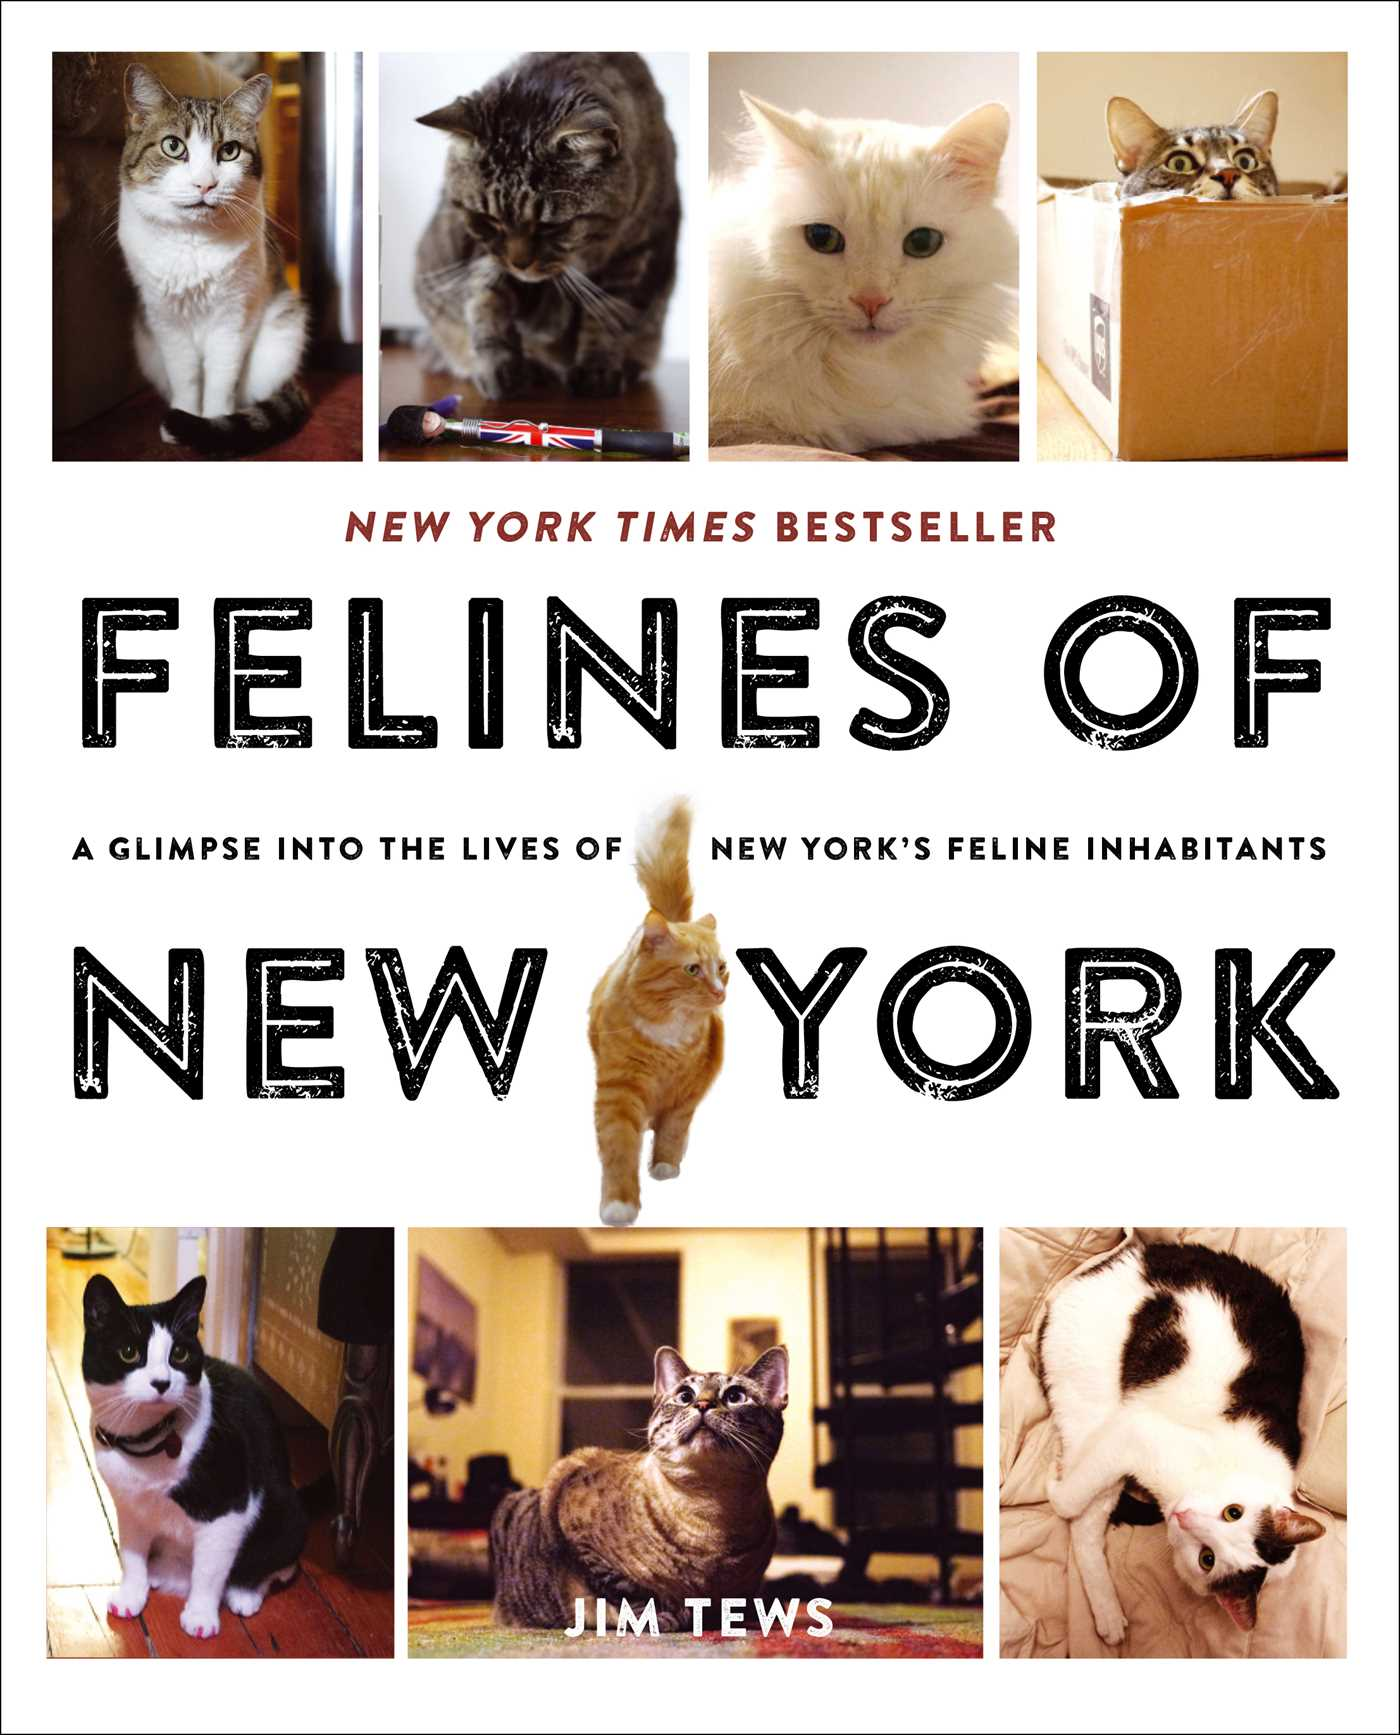 Felines of New York by Jim Tews